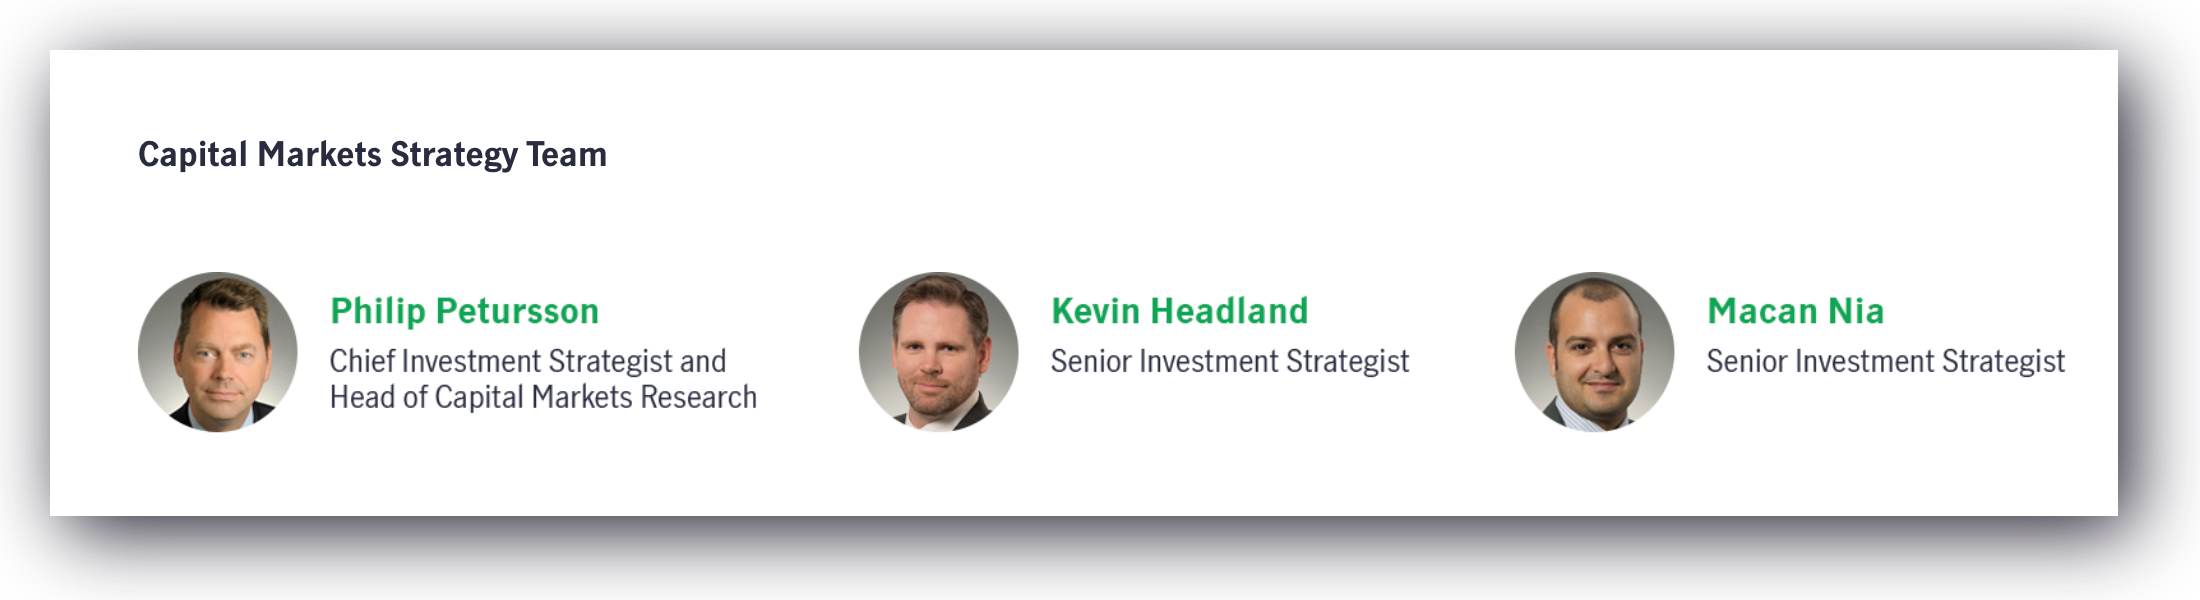 This is a Slide that explains who the Capital Markets Strategy team are, and includes images of Philip Petursson, Kevin Healand, and Macan Nia.